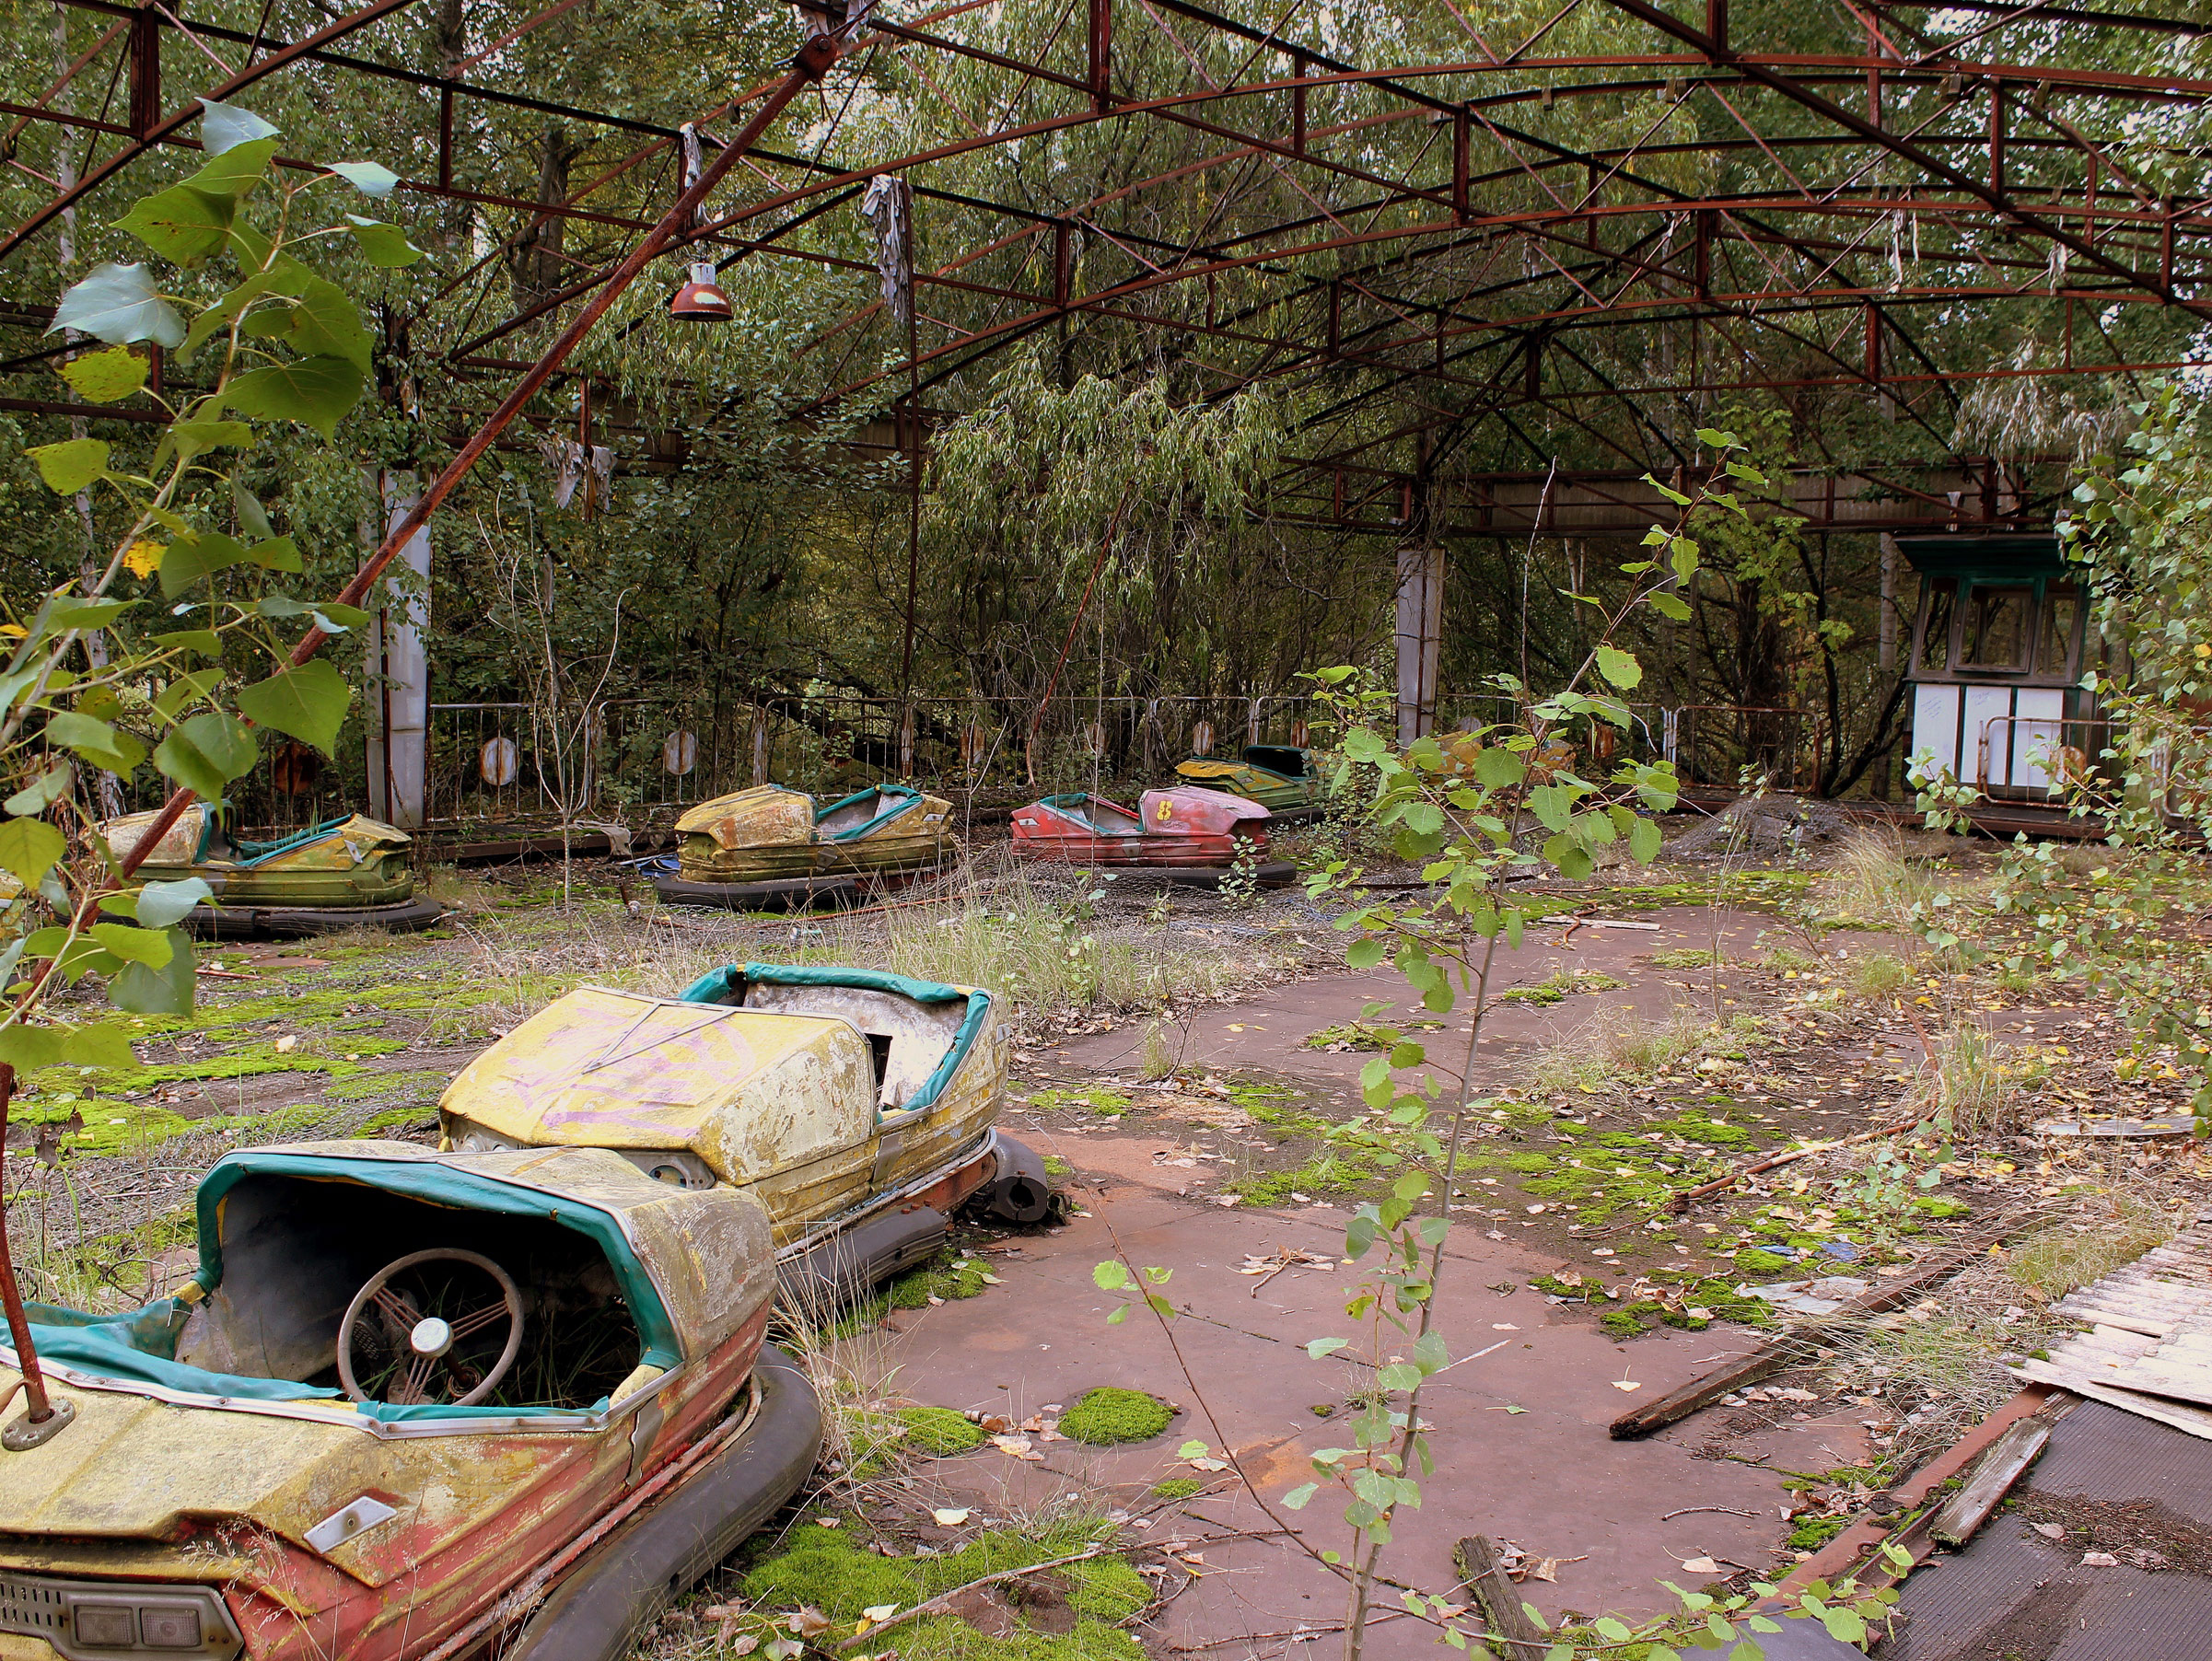 Life after the Chernobyl Disaster: Human Survival in Times of Ecological Crises